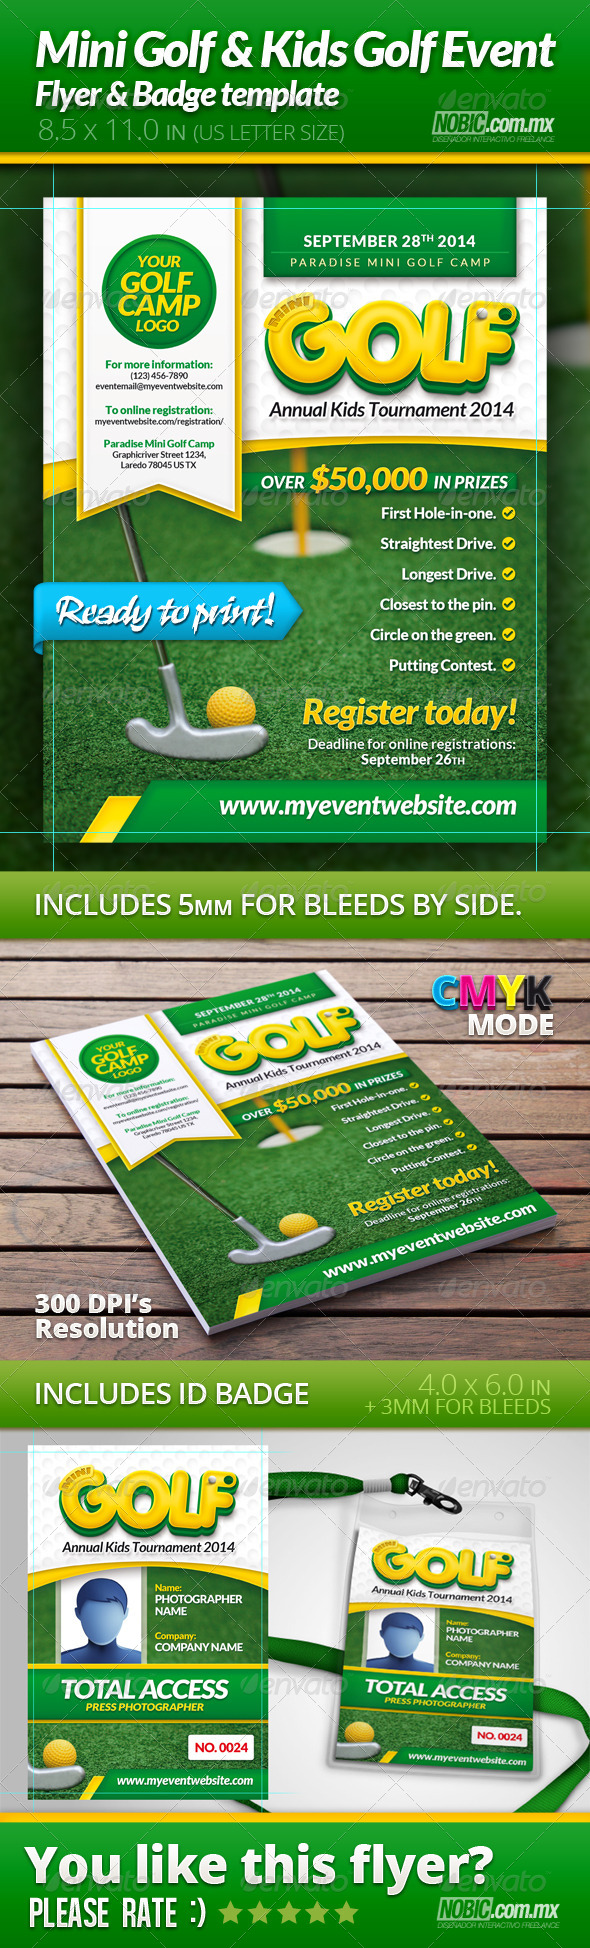 mini golf and kids golf flyer and badge template sports events